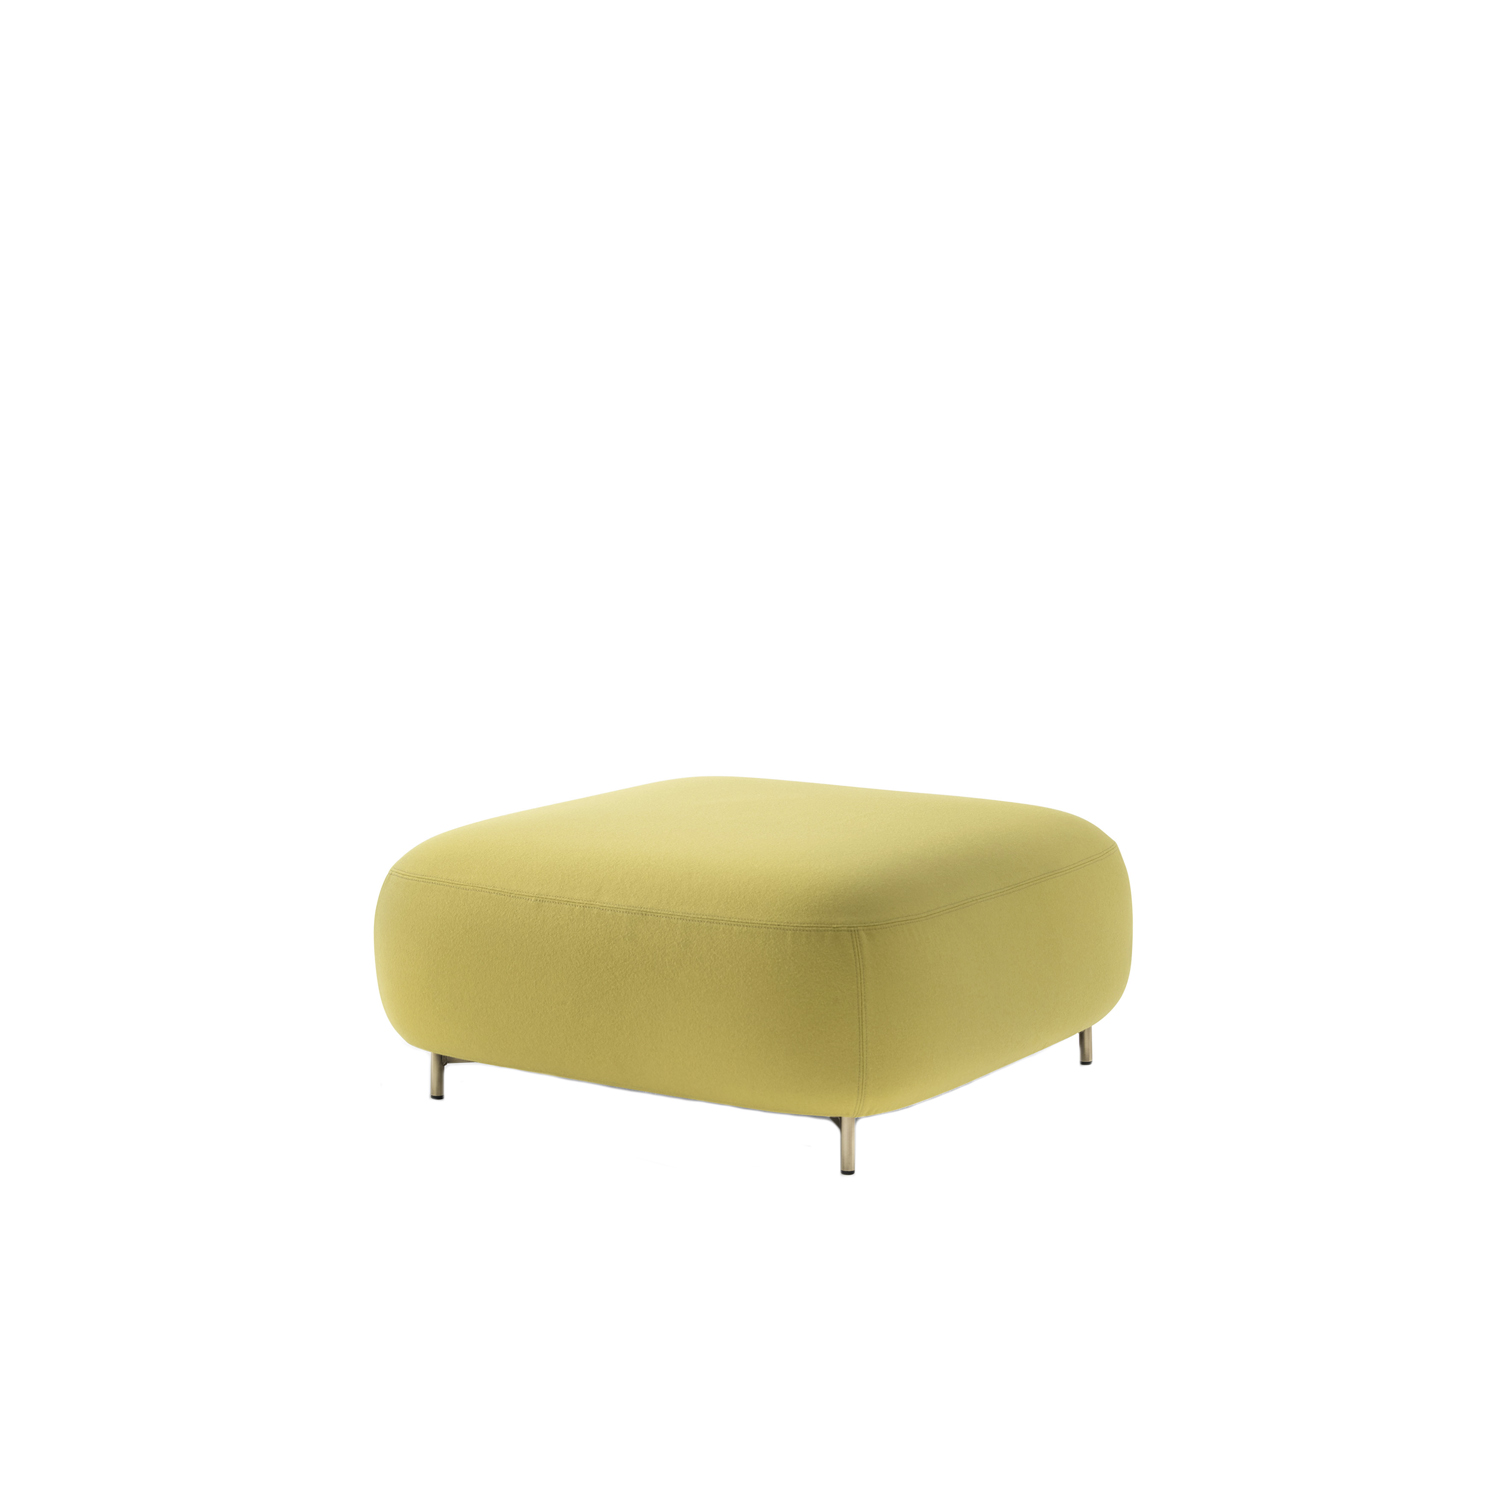 Buddy Pouf Large - Soft lines and clean design feature Buddy collection. The rounded shape of the pouf with a generous and comfortable upholstery is supported by four thin and rigorous legs Ø20mm. These make the pouf extremely functional and visually lift the volume from the ground. Height 400 - 450 mm.